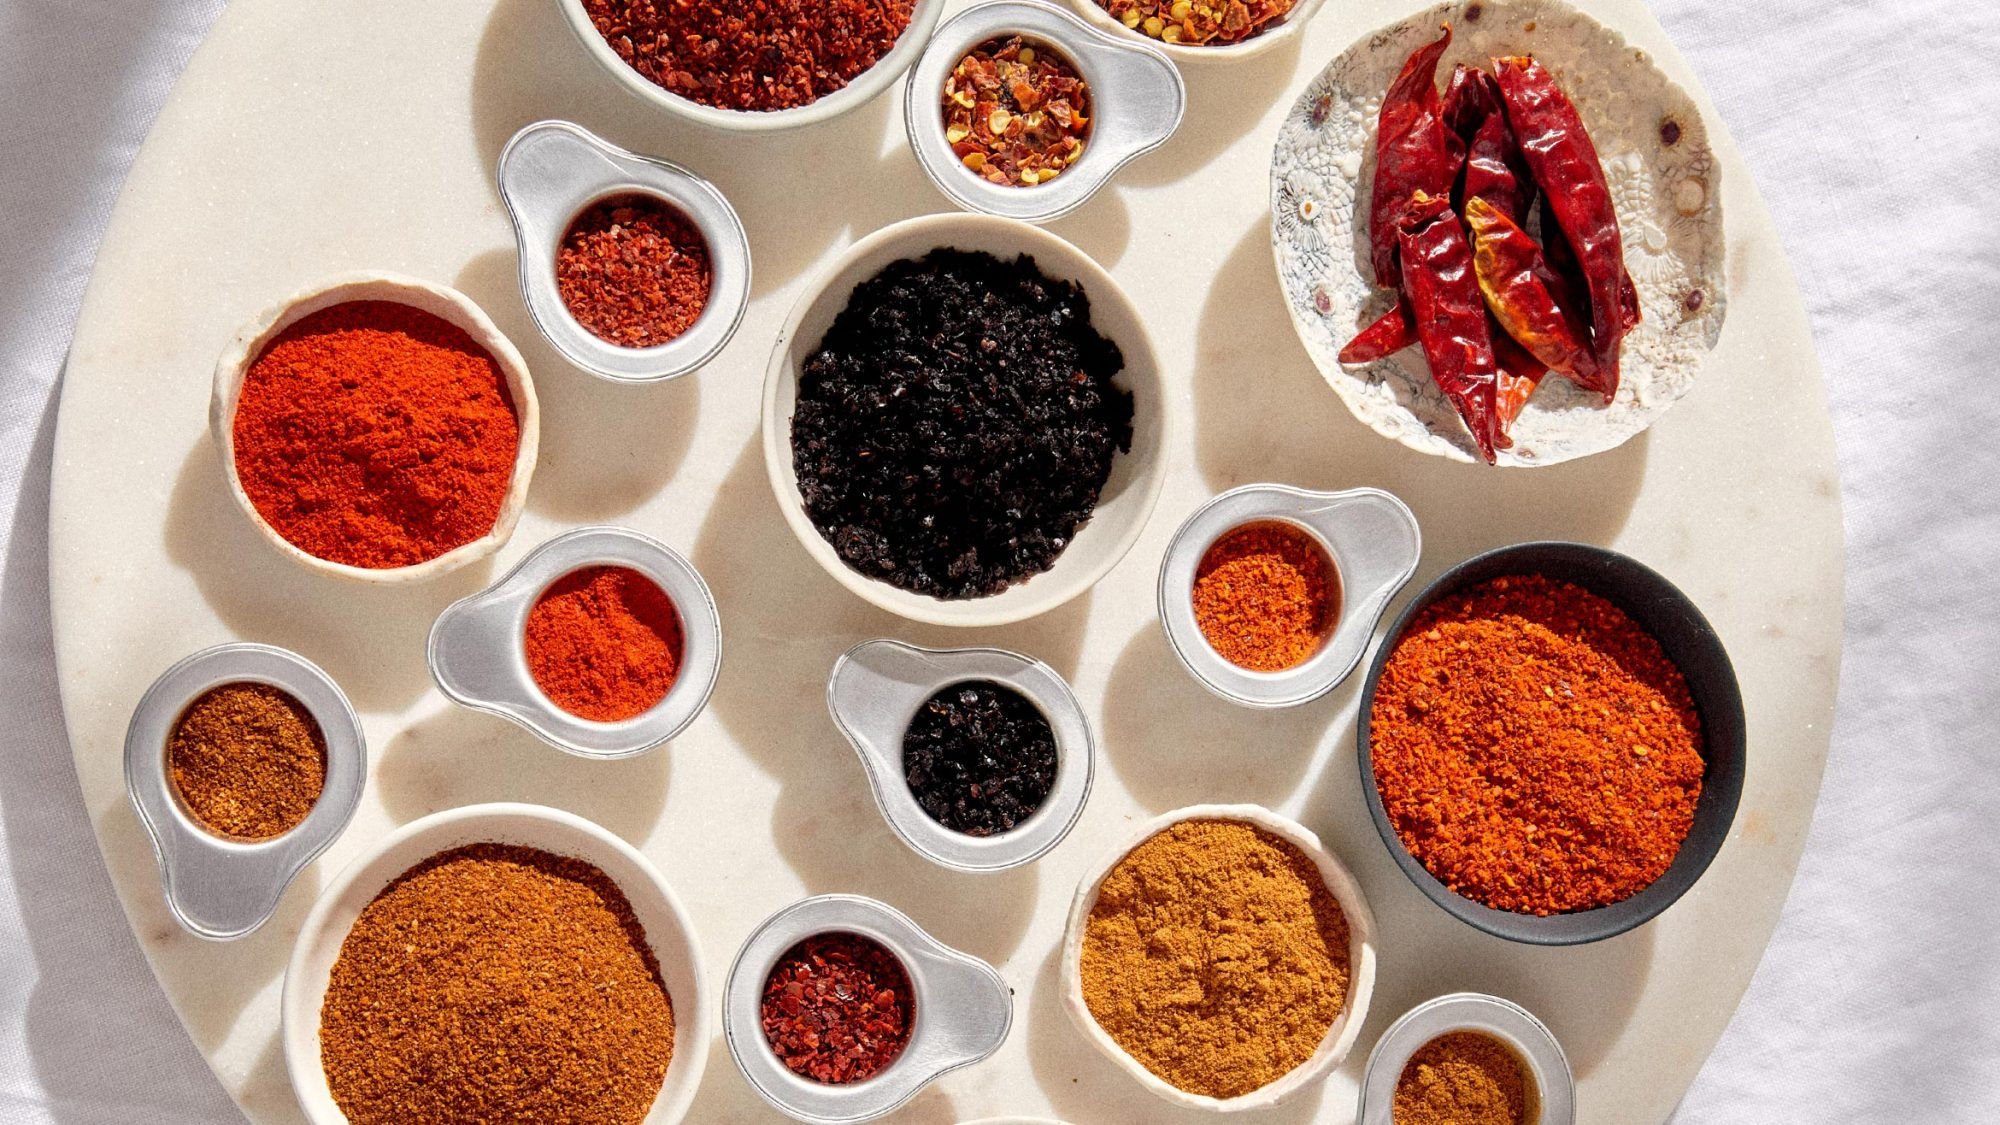 Article-Occo-Calabrian-Chile-Spice-Sampler